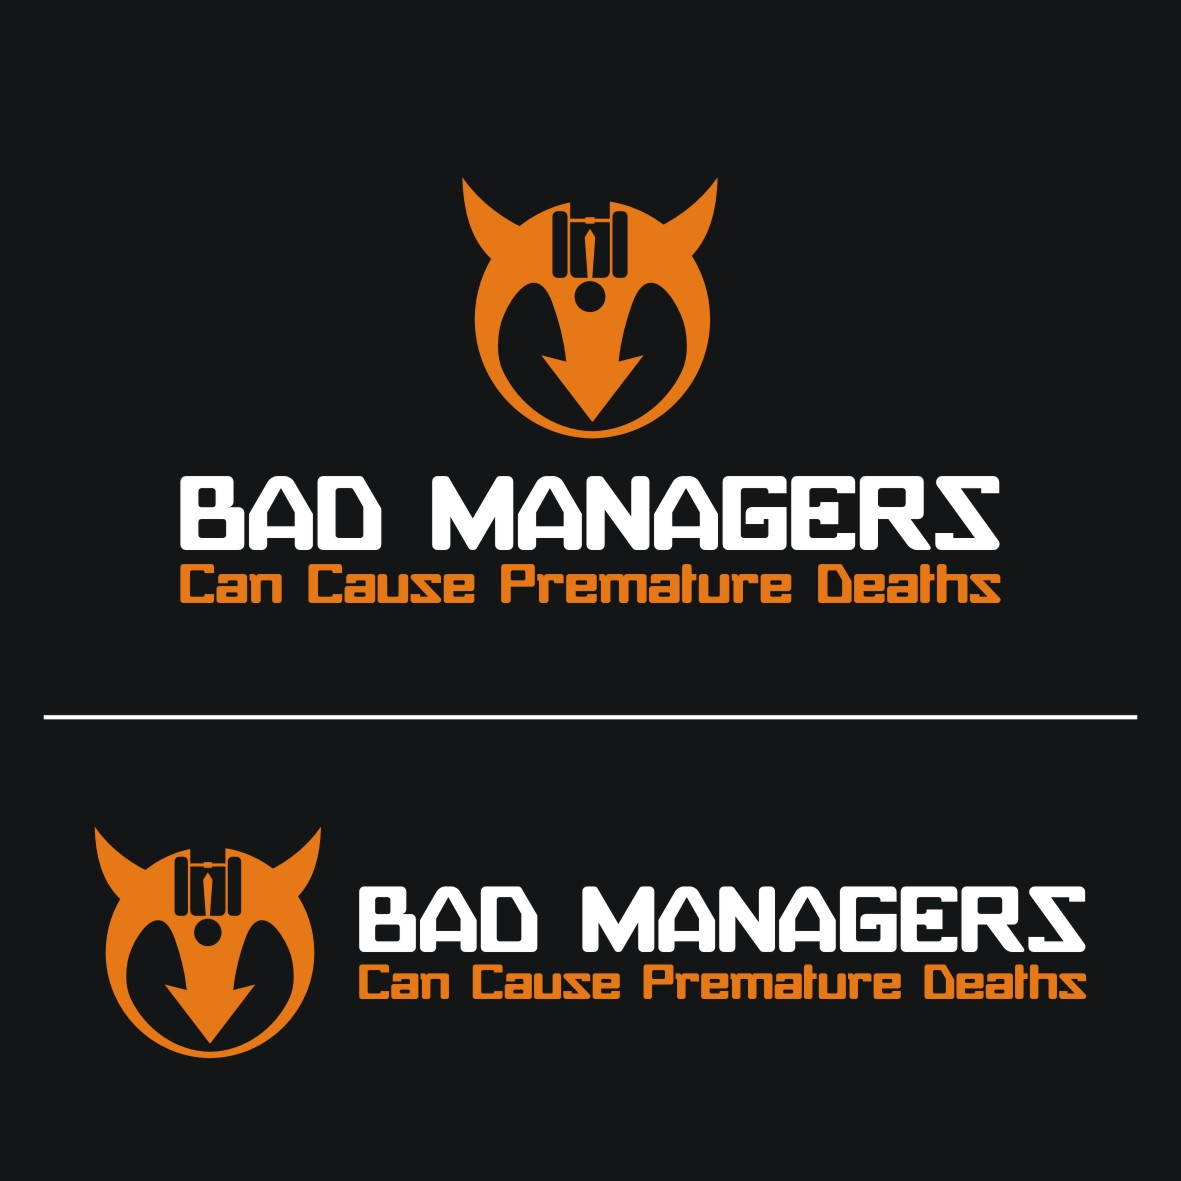 Logo Design by arteo_design - Entry No. 63 in the Logo Design Contest Unique Logo Design Wanted for Bad Managers Can Cause Premature Deaths.